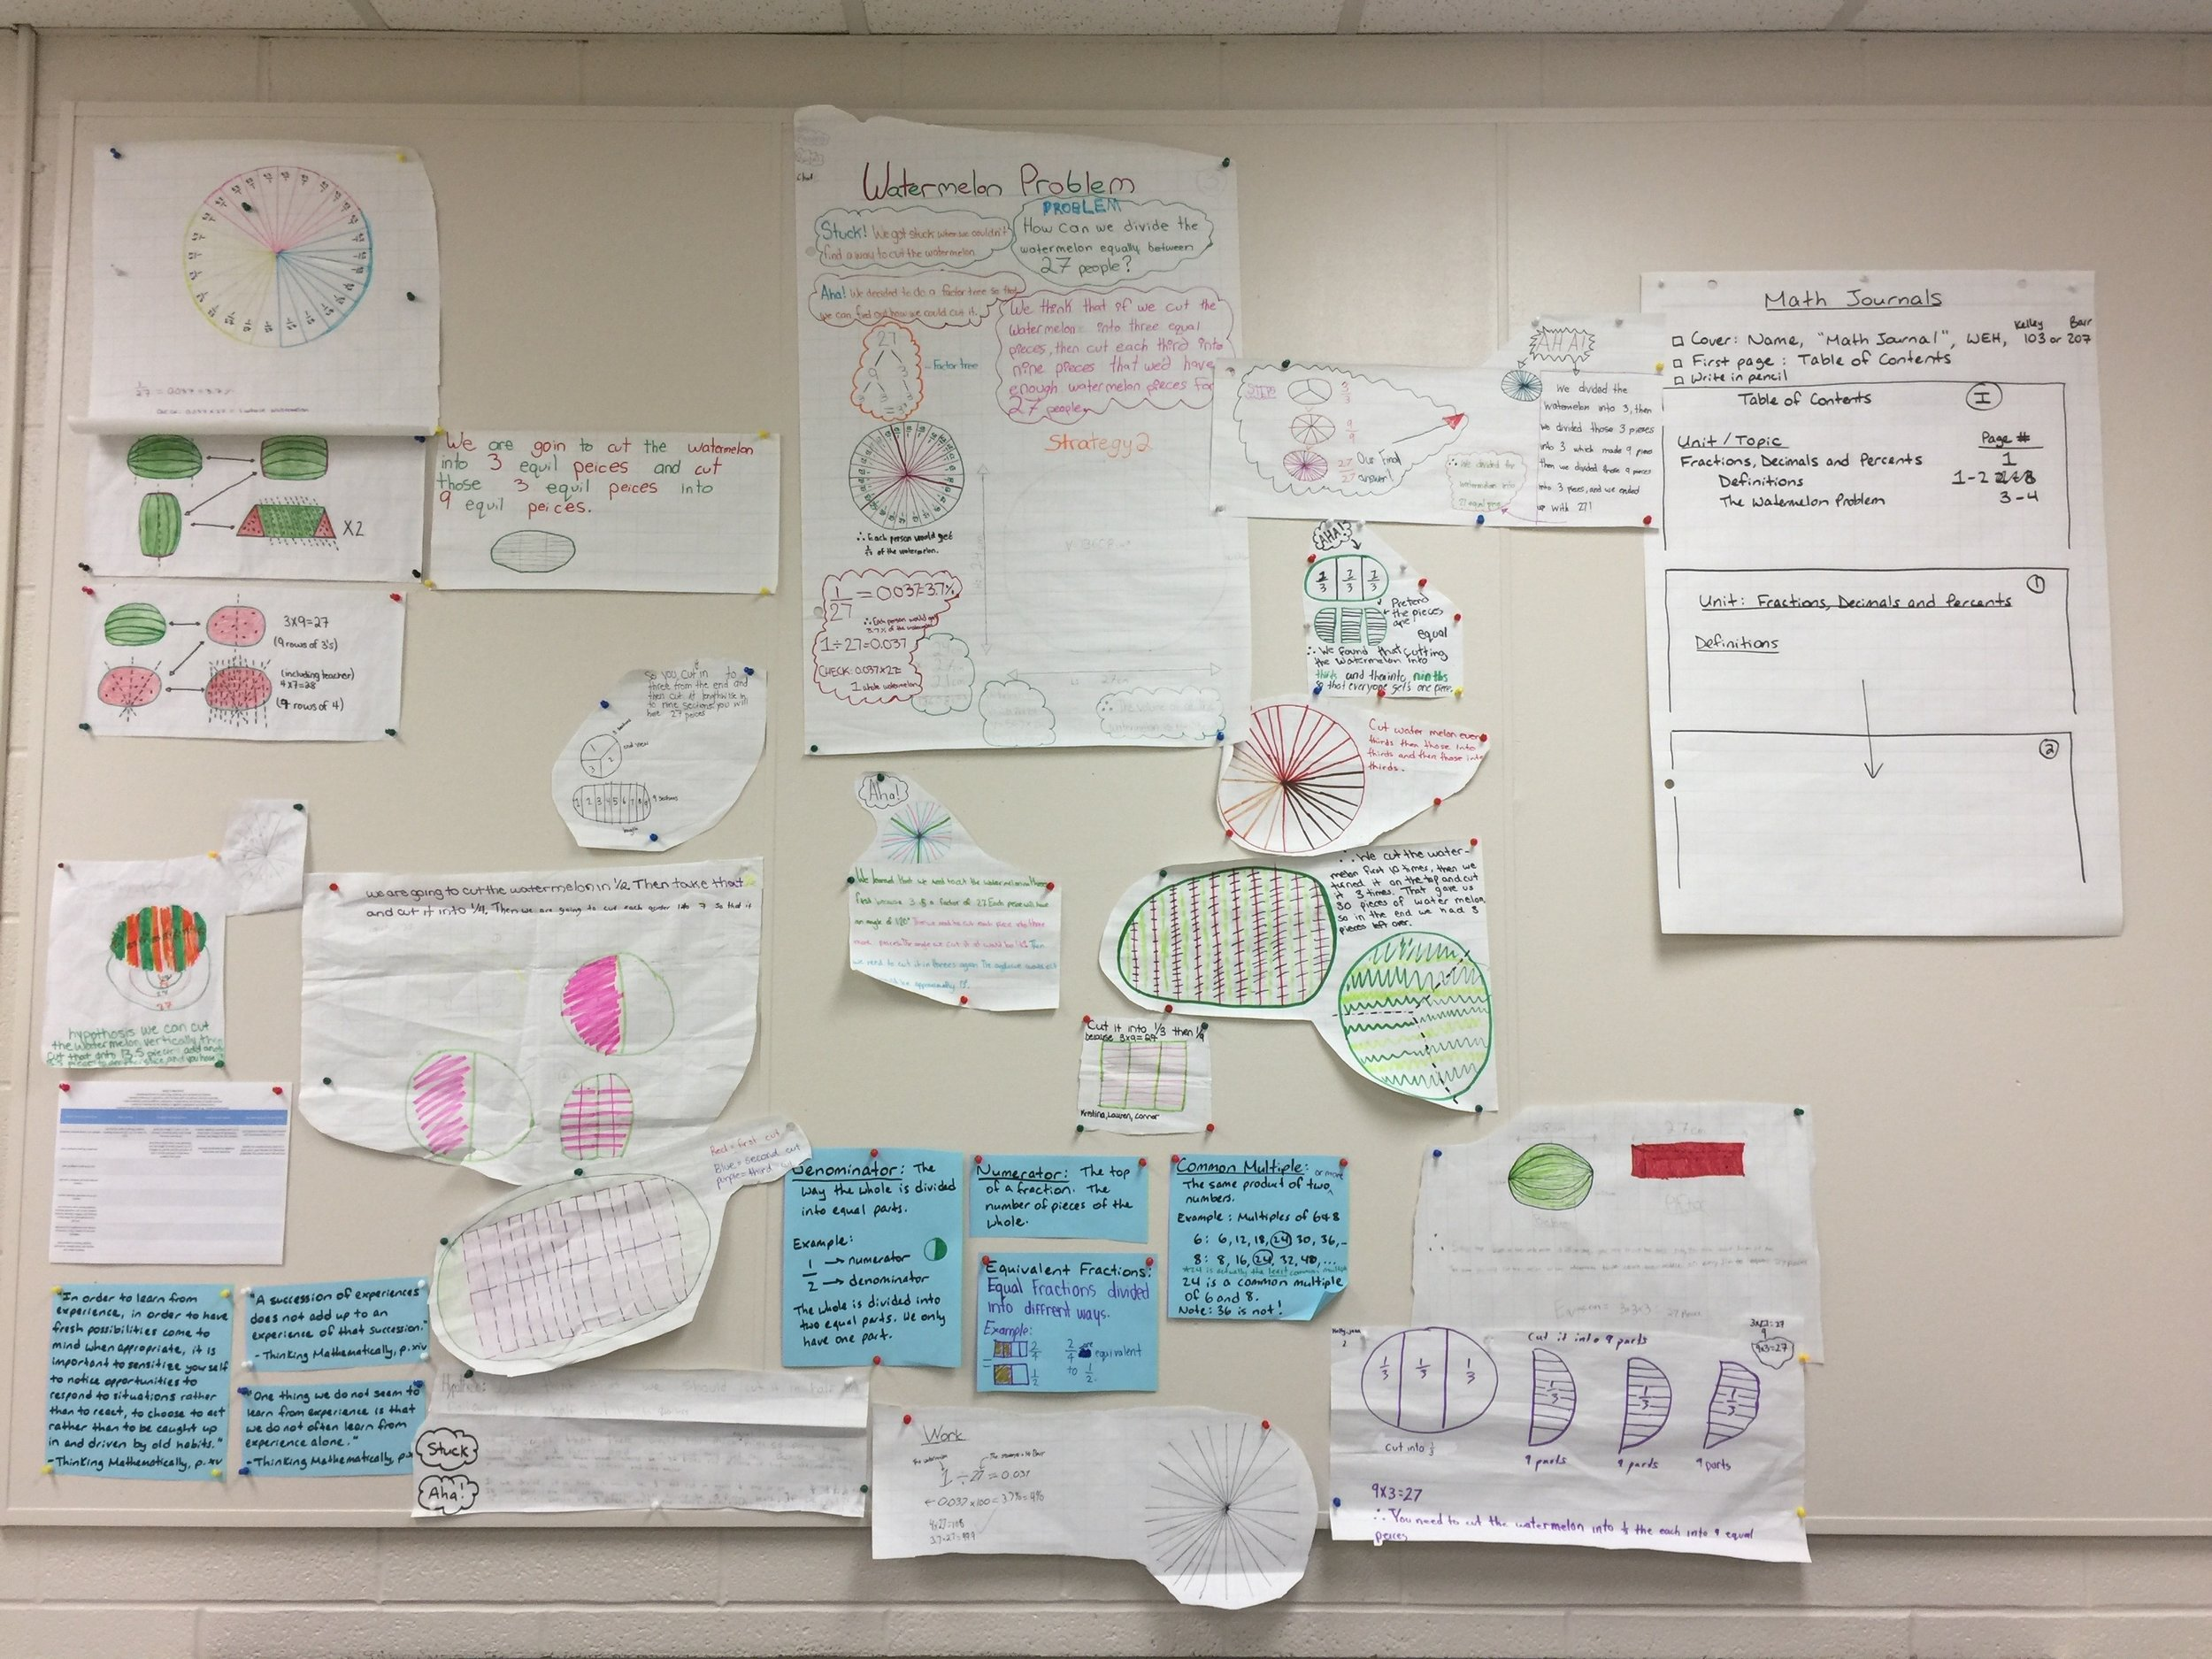 2016-09-14-the-watermelon-problem-student-solutions-strategy-wall.jpg